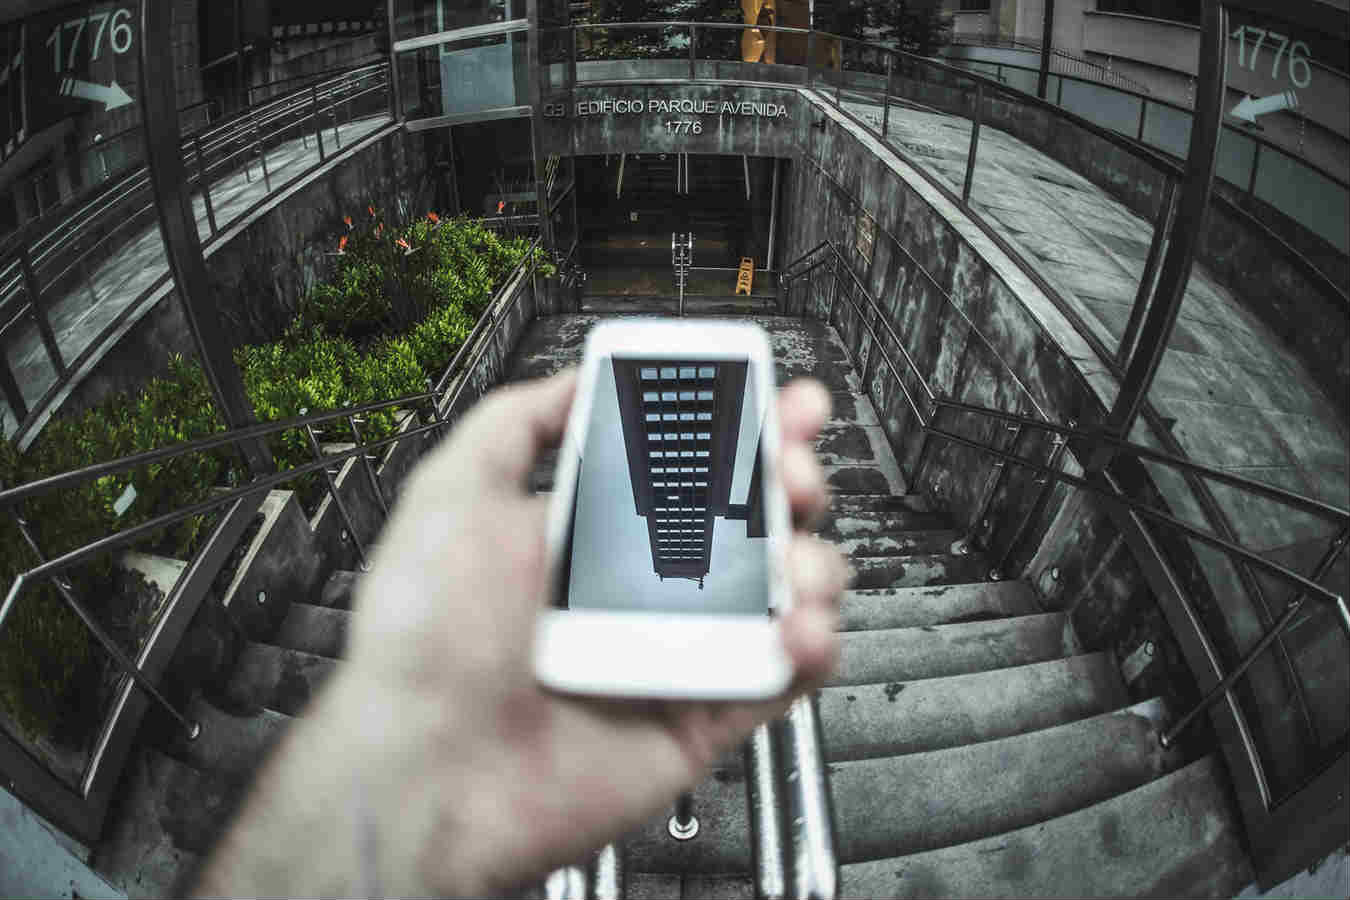 Keyless access control is the future for the modern workplace.